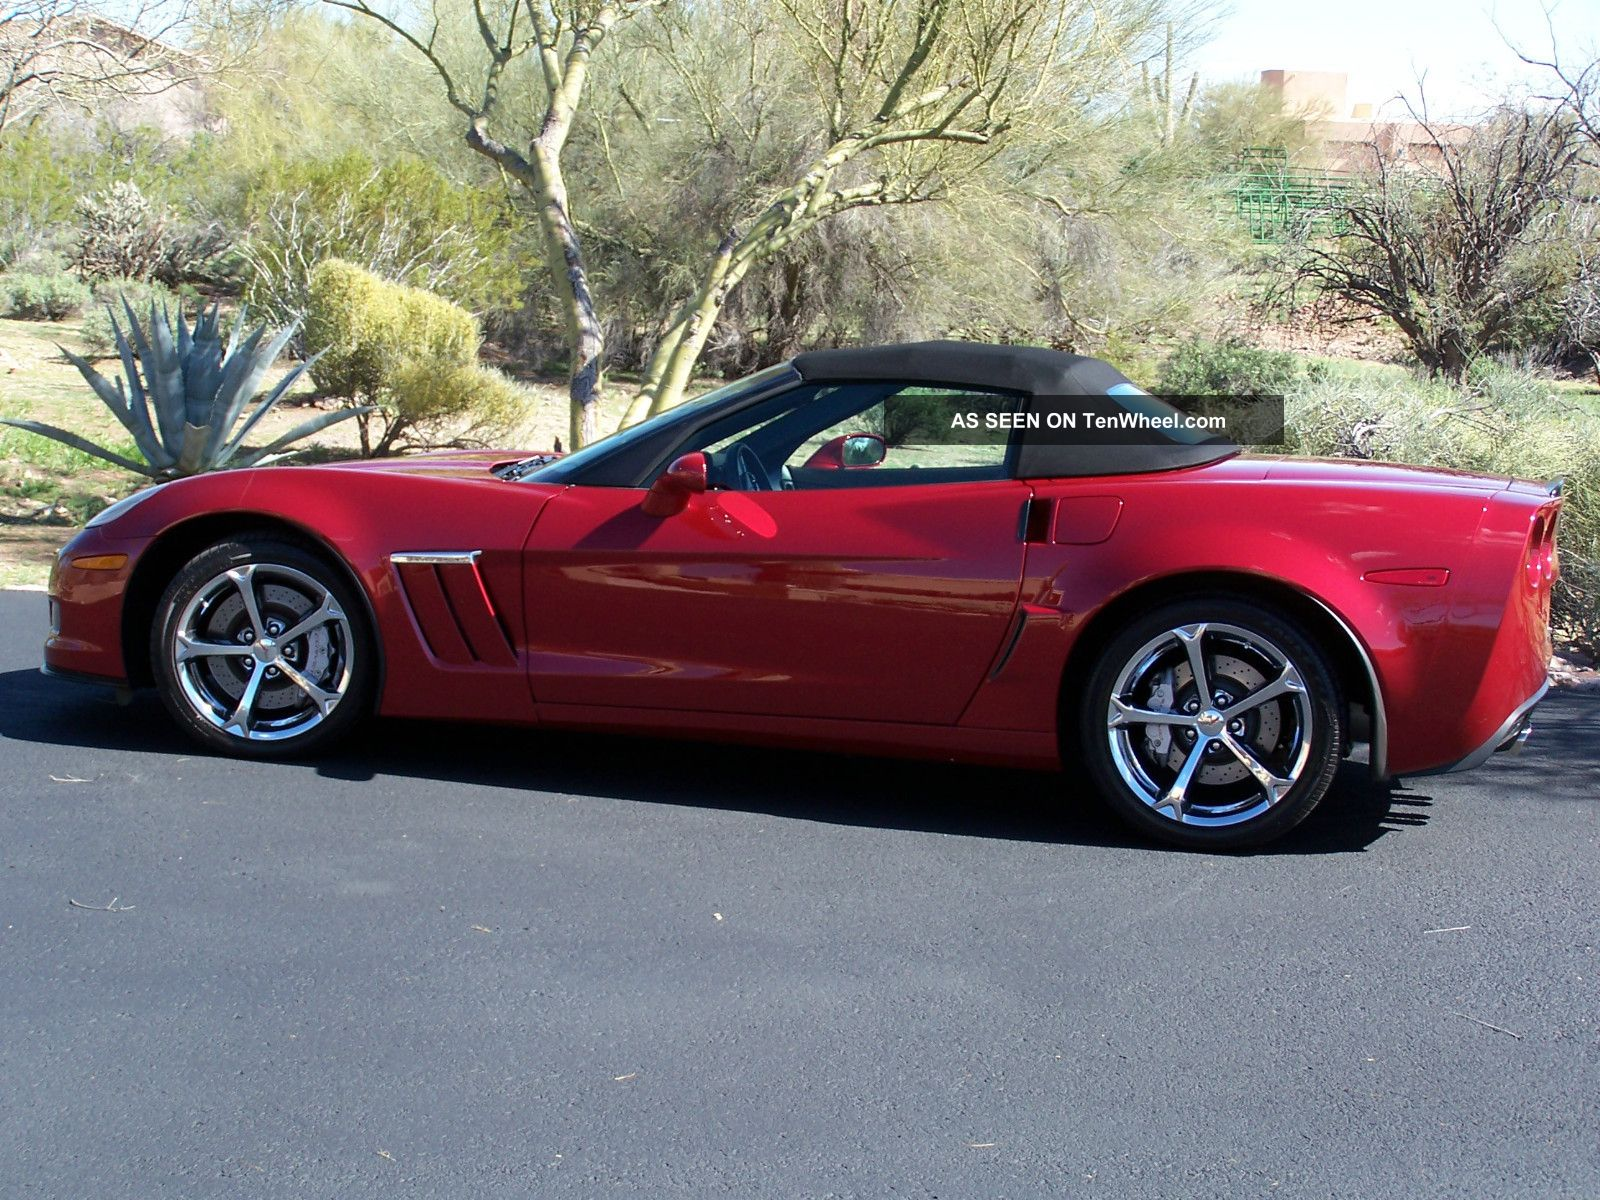 2010 chevrolet corvette grand sport convertible 2 door 6 2l. Black Bedroom Furniture Sets. Home Design Ideas